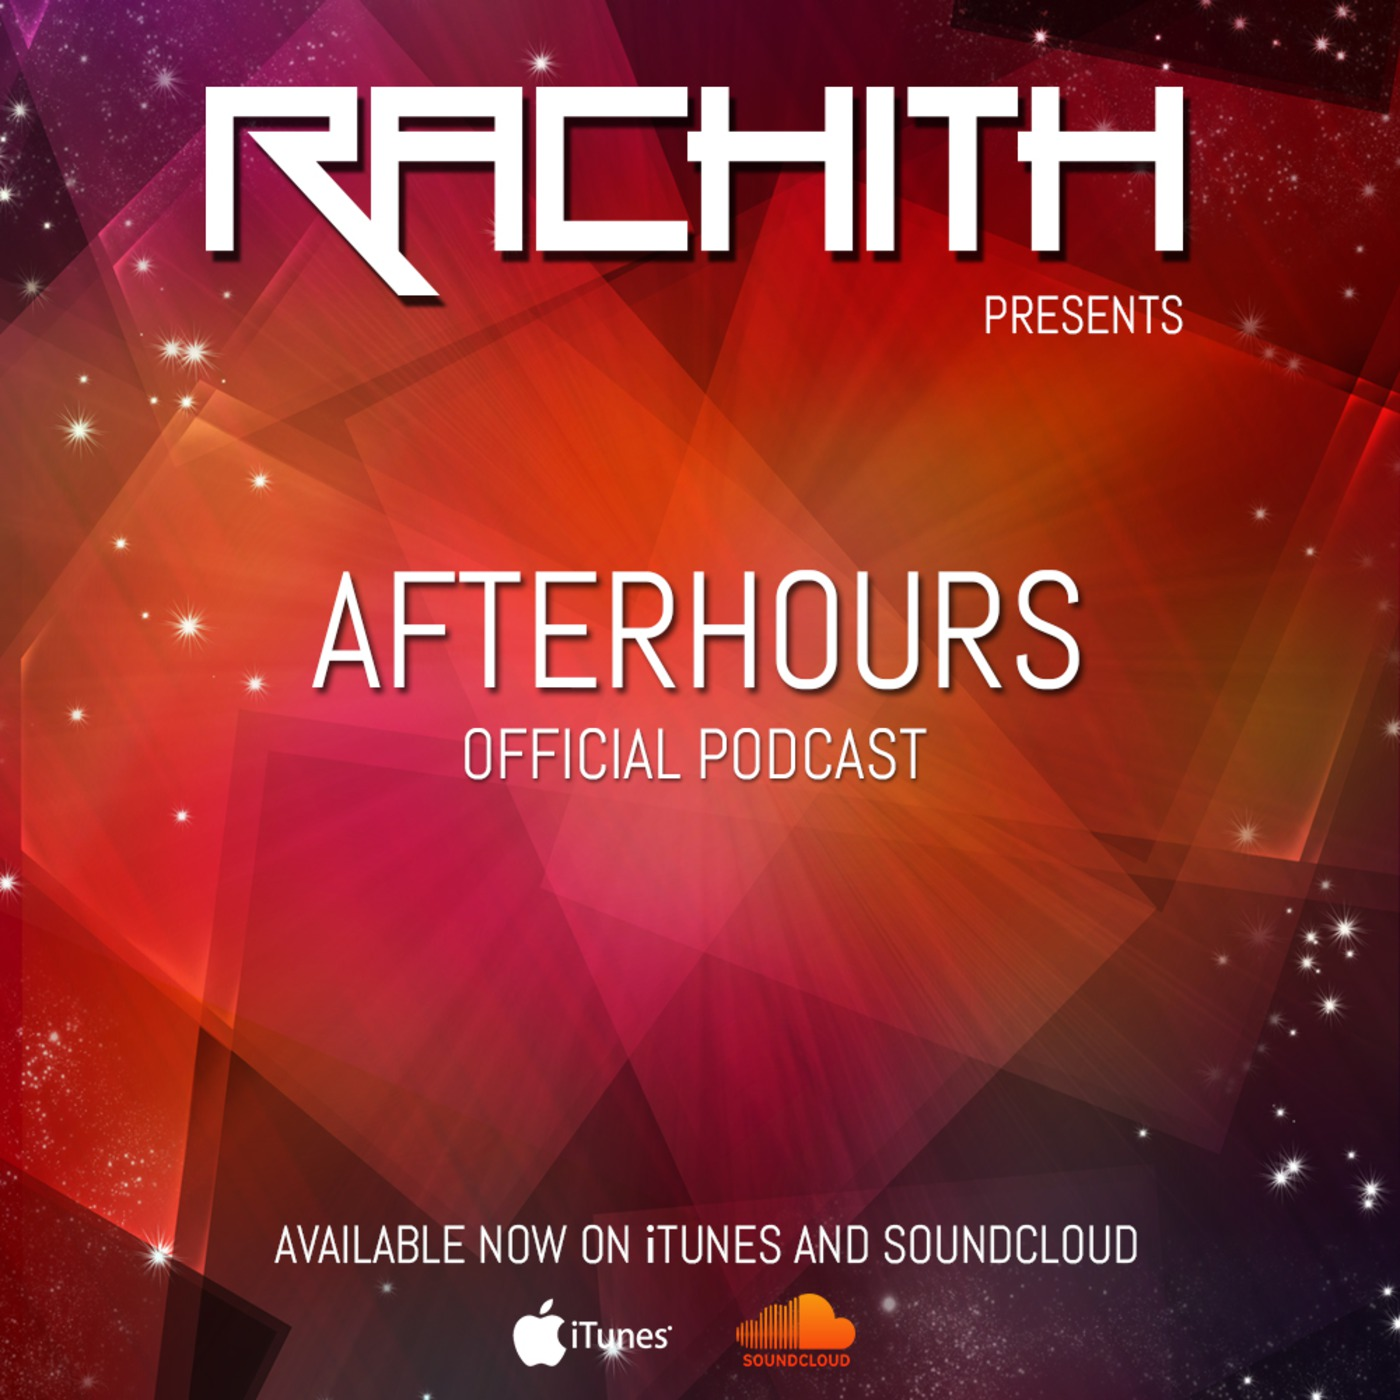 AFTERHOURS Podcast by Rachith